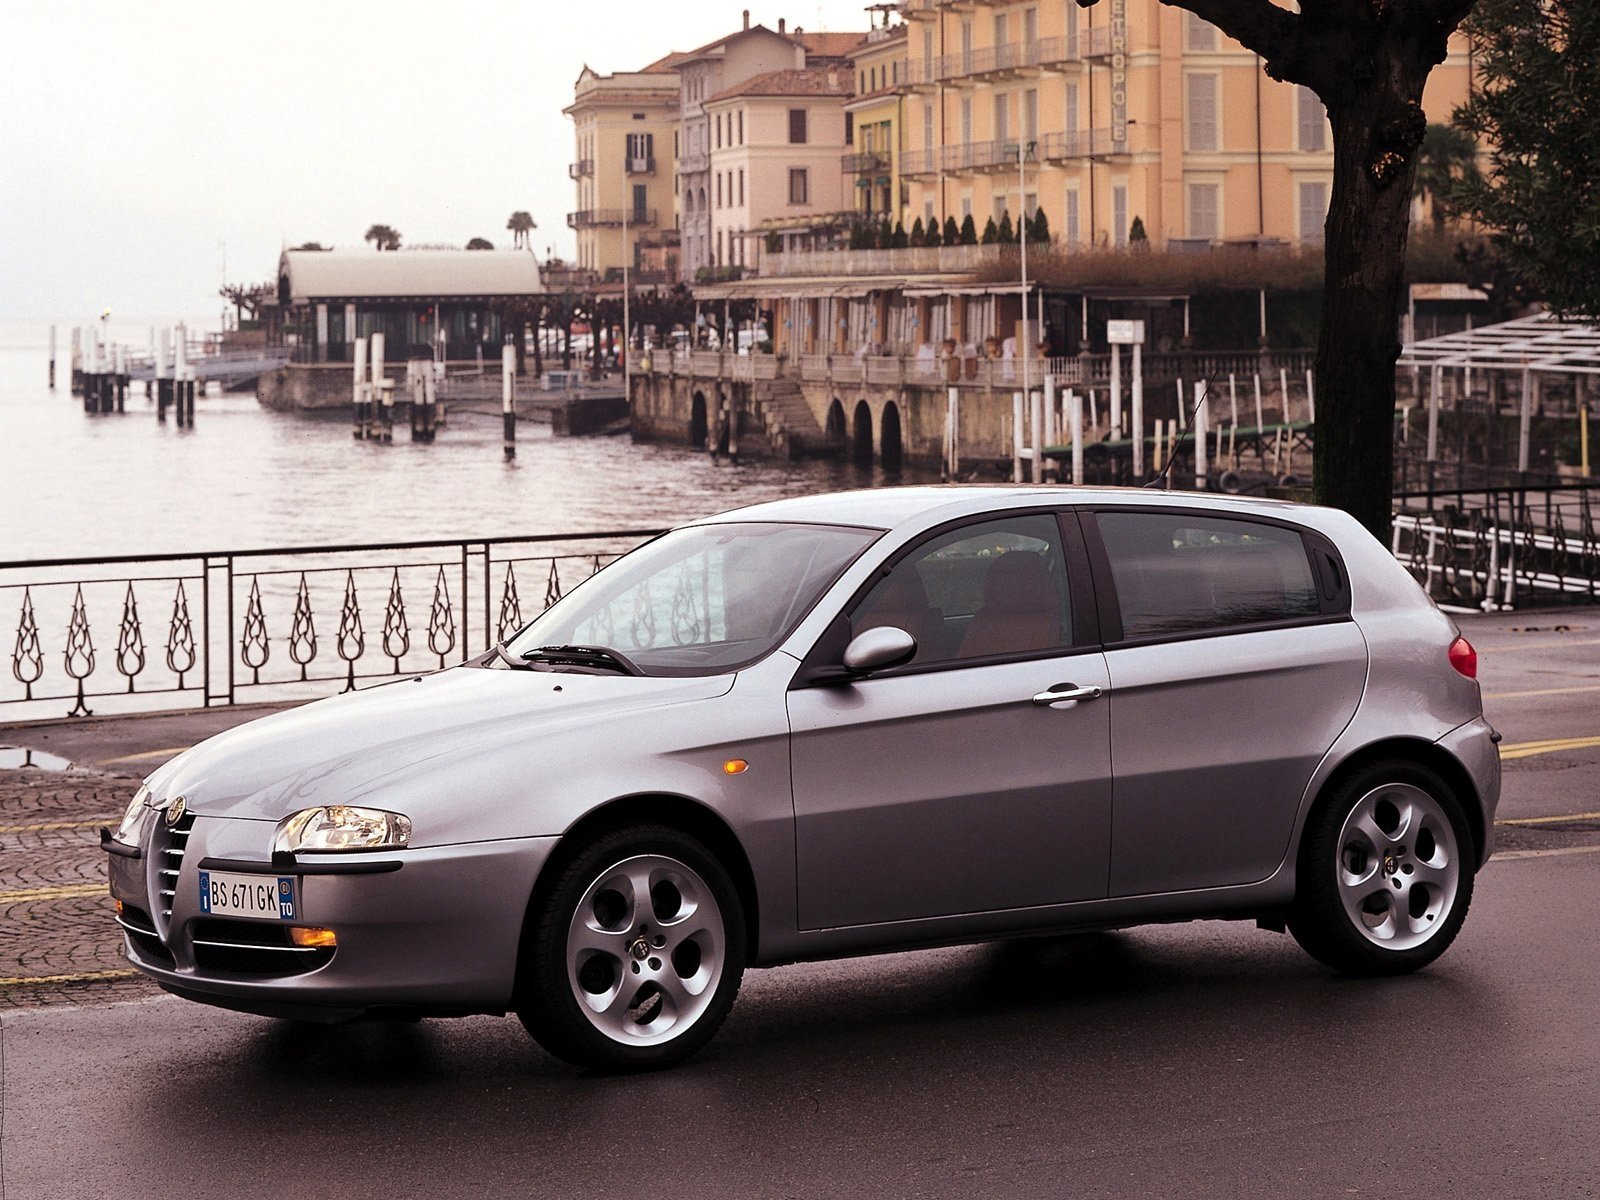 Alfa Romeo 147 Wallpaper And Background Image 1600x1200 Id 525020 Wallpaper Abyss